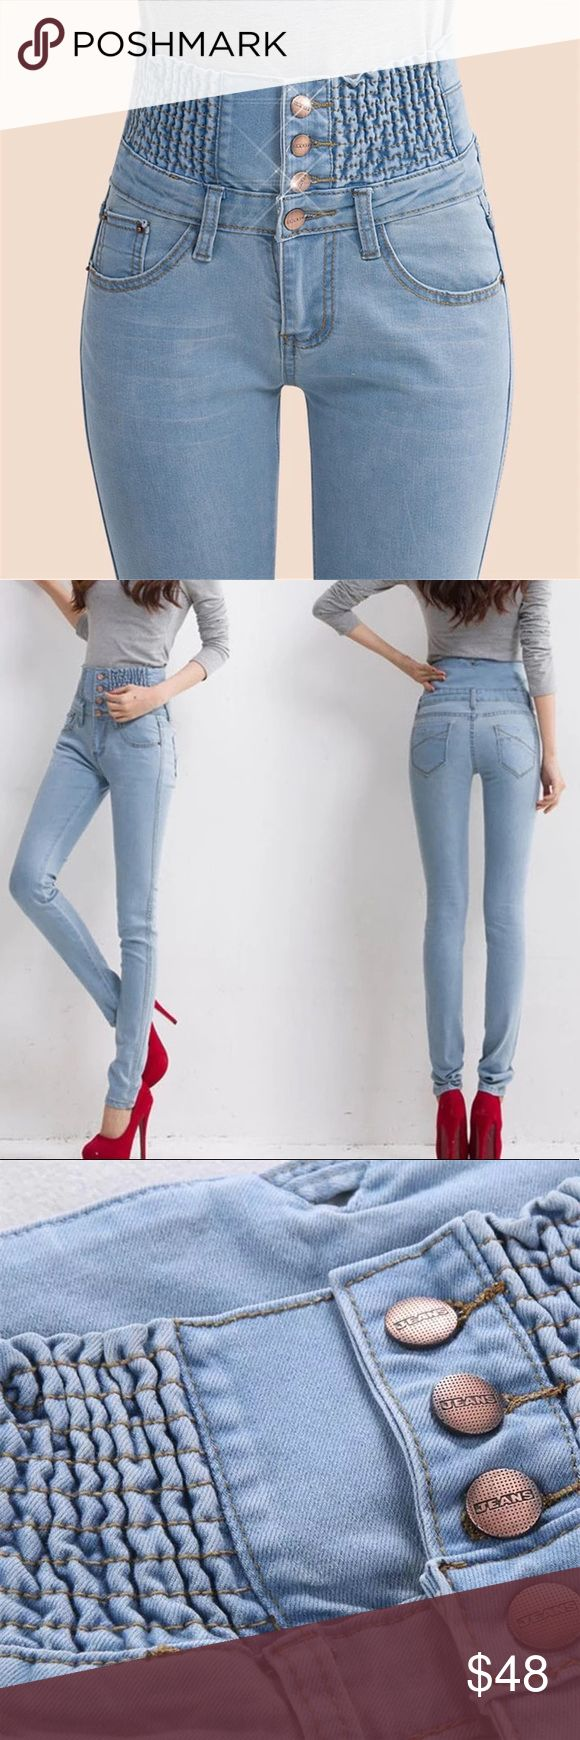 2018 SUPER CUTE& HIGH WAISTED LIGHT SKINNY JEANS 2017 2018 SUPER CUTE& SUPER HIGH WAISTED ELASTIC TUMMY CONTROL DENIM SLIM SKY BLUE SKINNY JEANS IN SIZE 27 / LOW PRICE / FAST SHIPPING Jeans Skinny